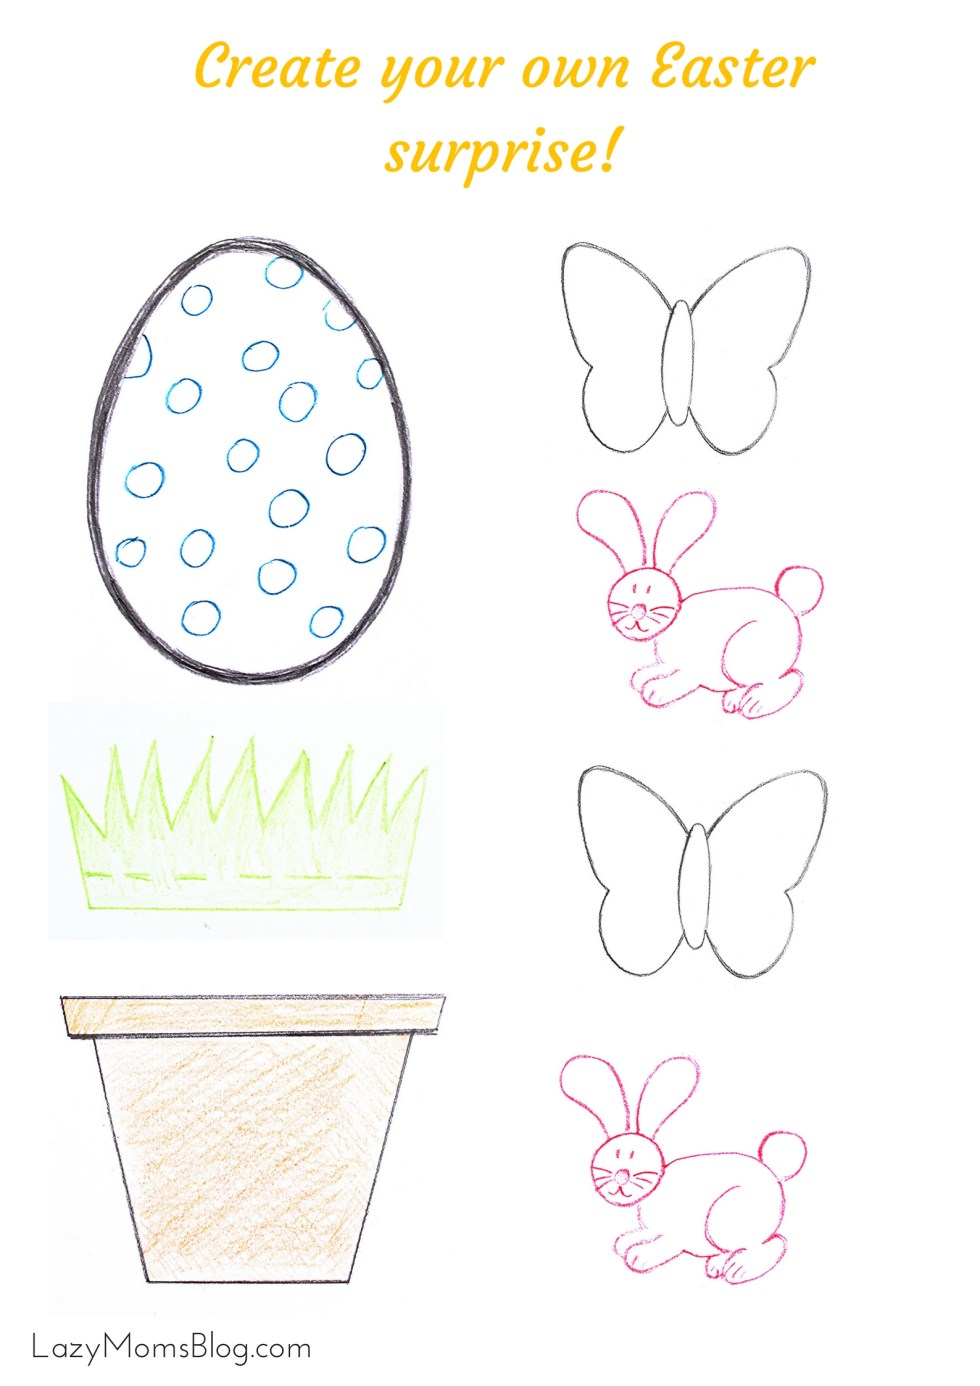 Printable Easter preschool activity